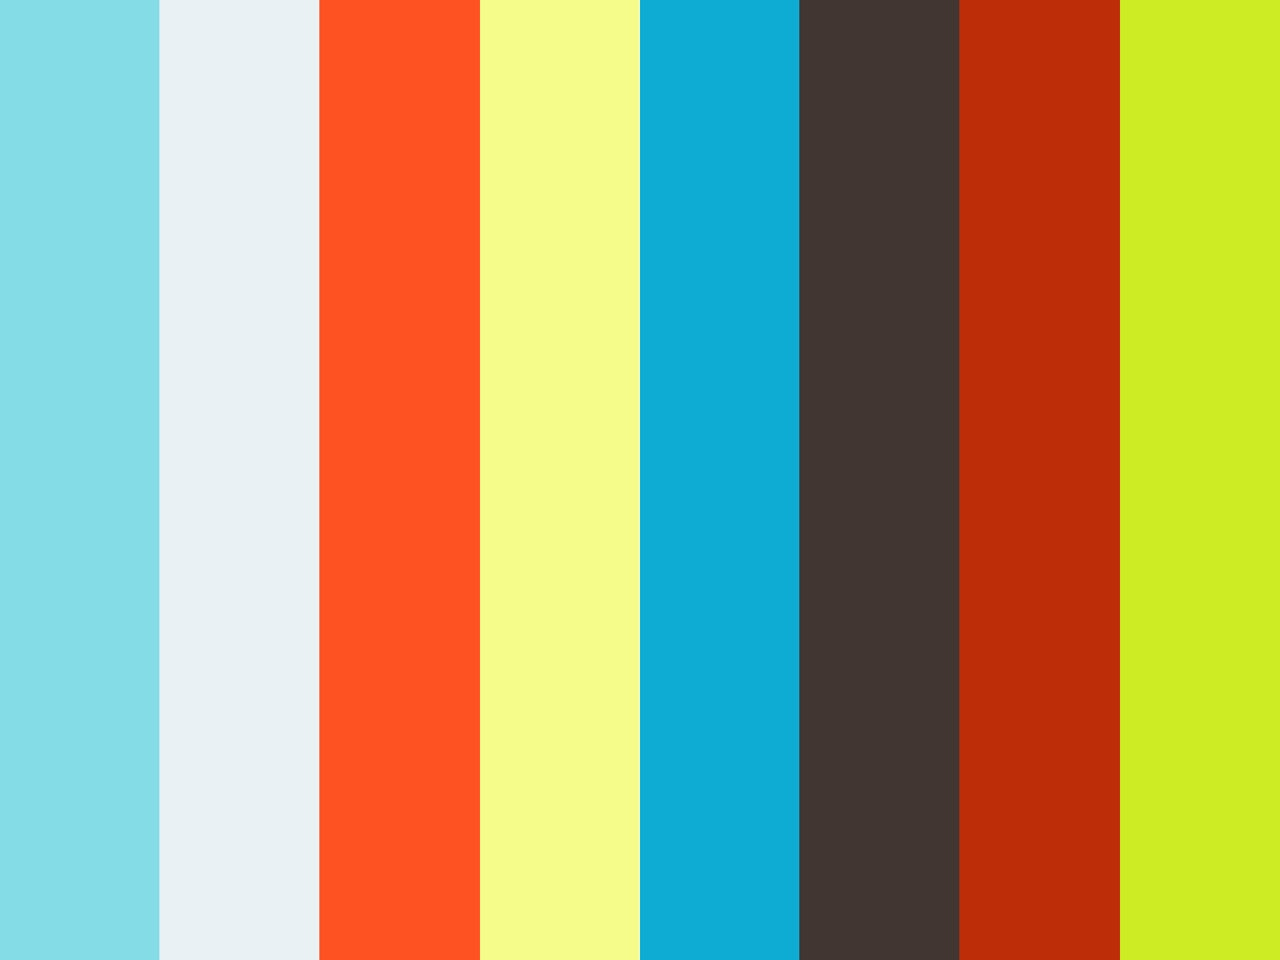 essay on global warming css forum Global warming essay: you are asked in the question to discuss the causes of global warming and possible solutions for individuals and the government.